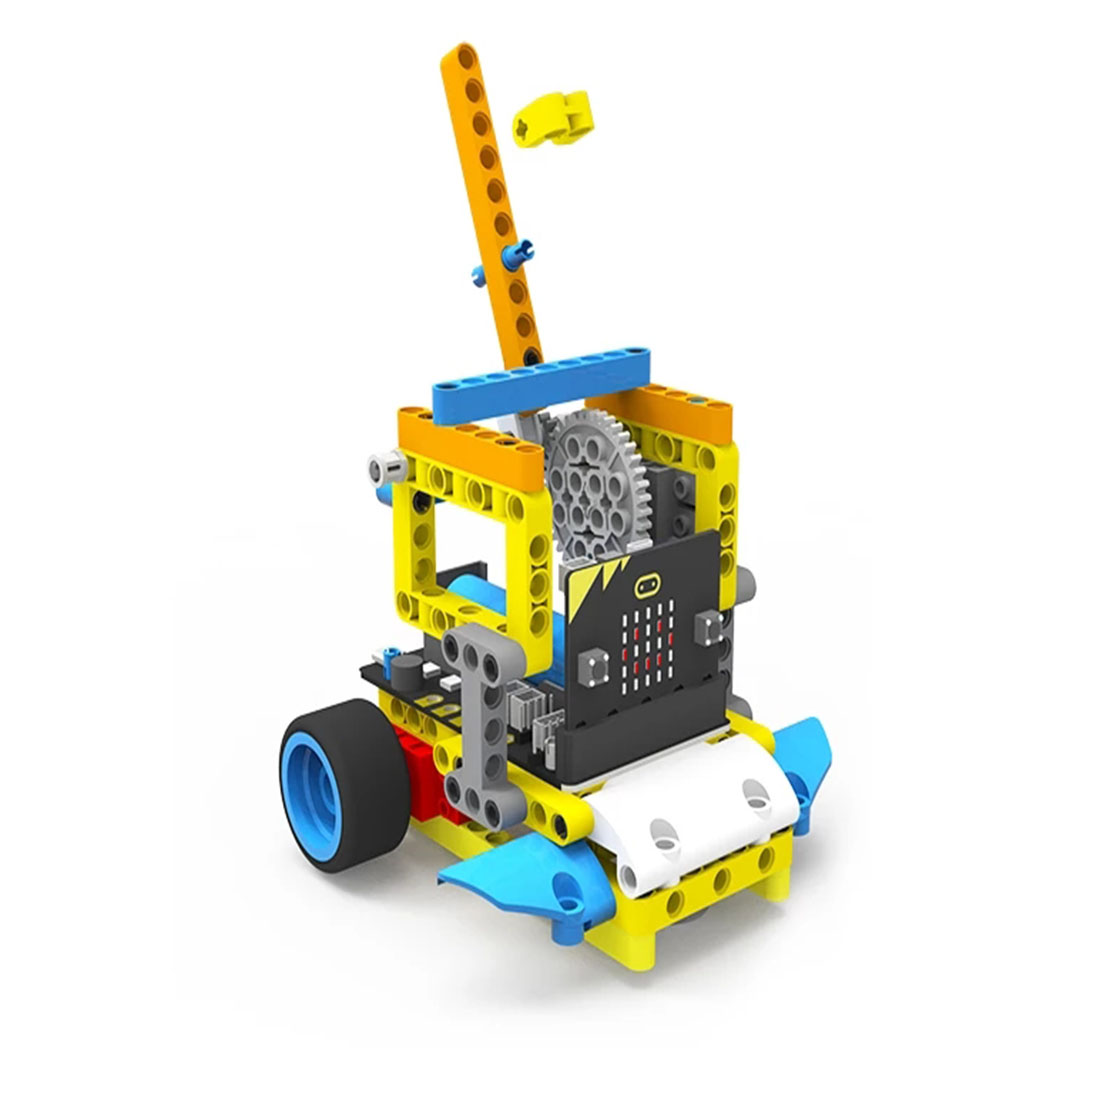 Program Intelligent Robot Building Block Car Kit Various Shapes Steam Programming Education Car For Micro:Bit(Including Or Not )